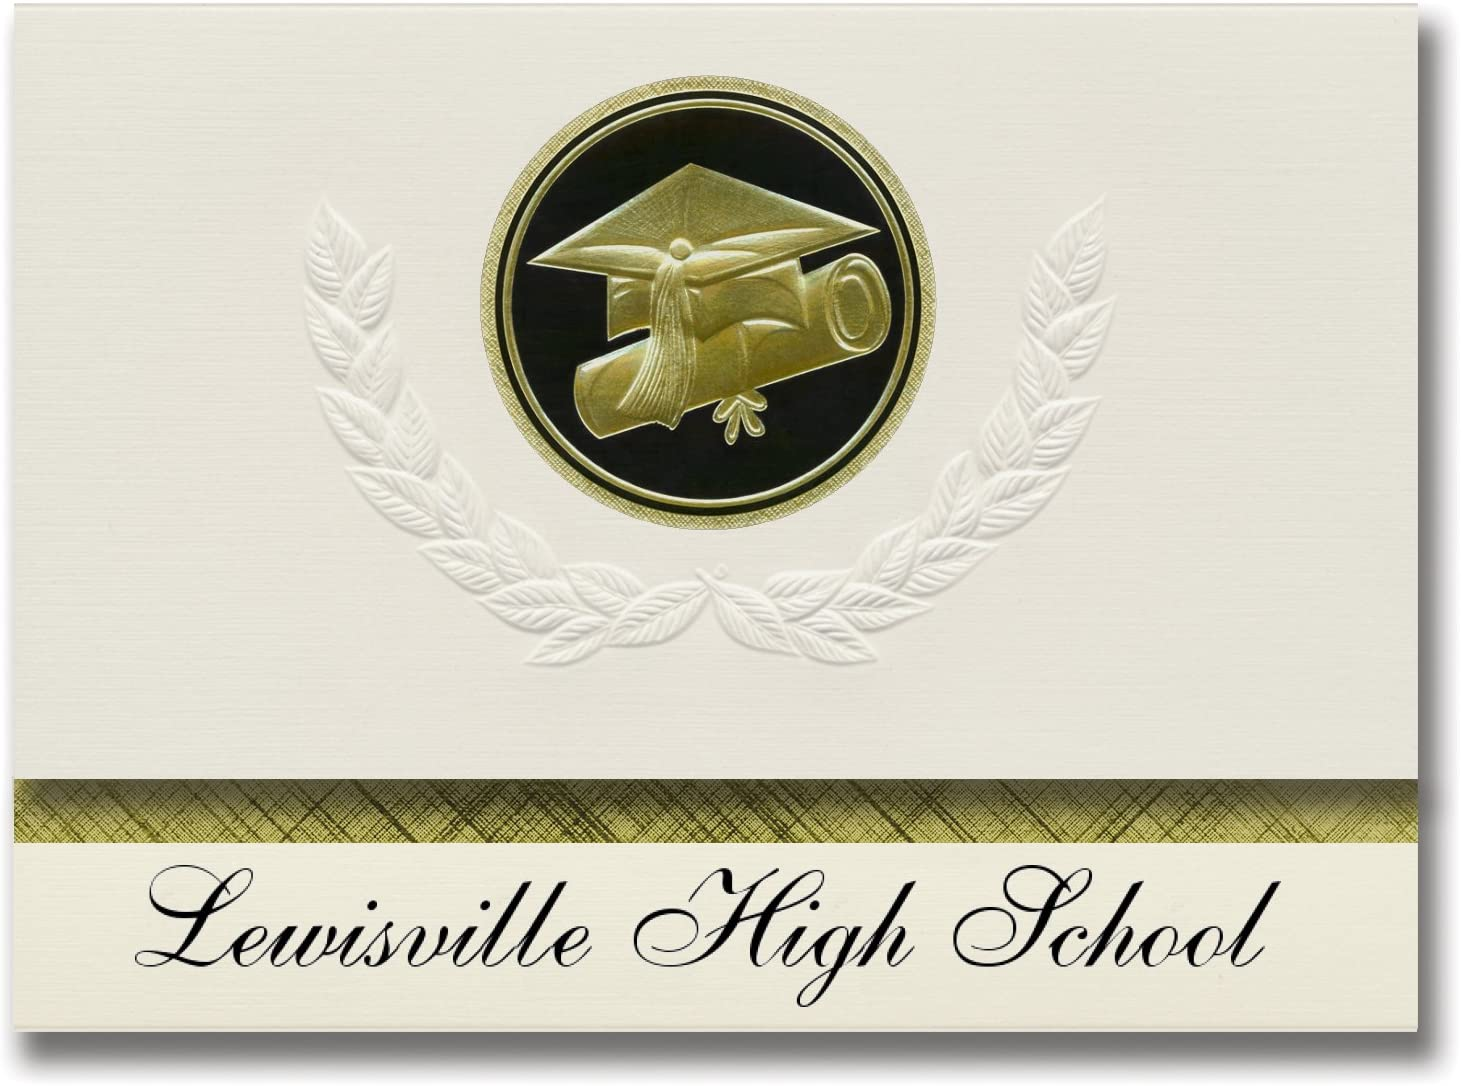 Signature Announcements Lewisville High School (Lewisville, TX) Graduation Announcements, Presidential style, Elite package of 25 Cap & Diploma Seal Black & Gold